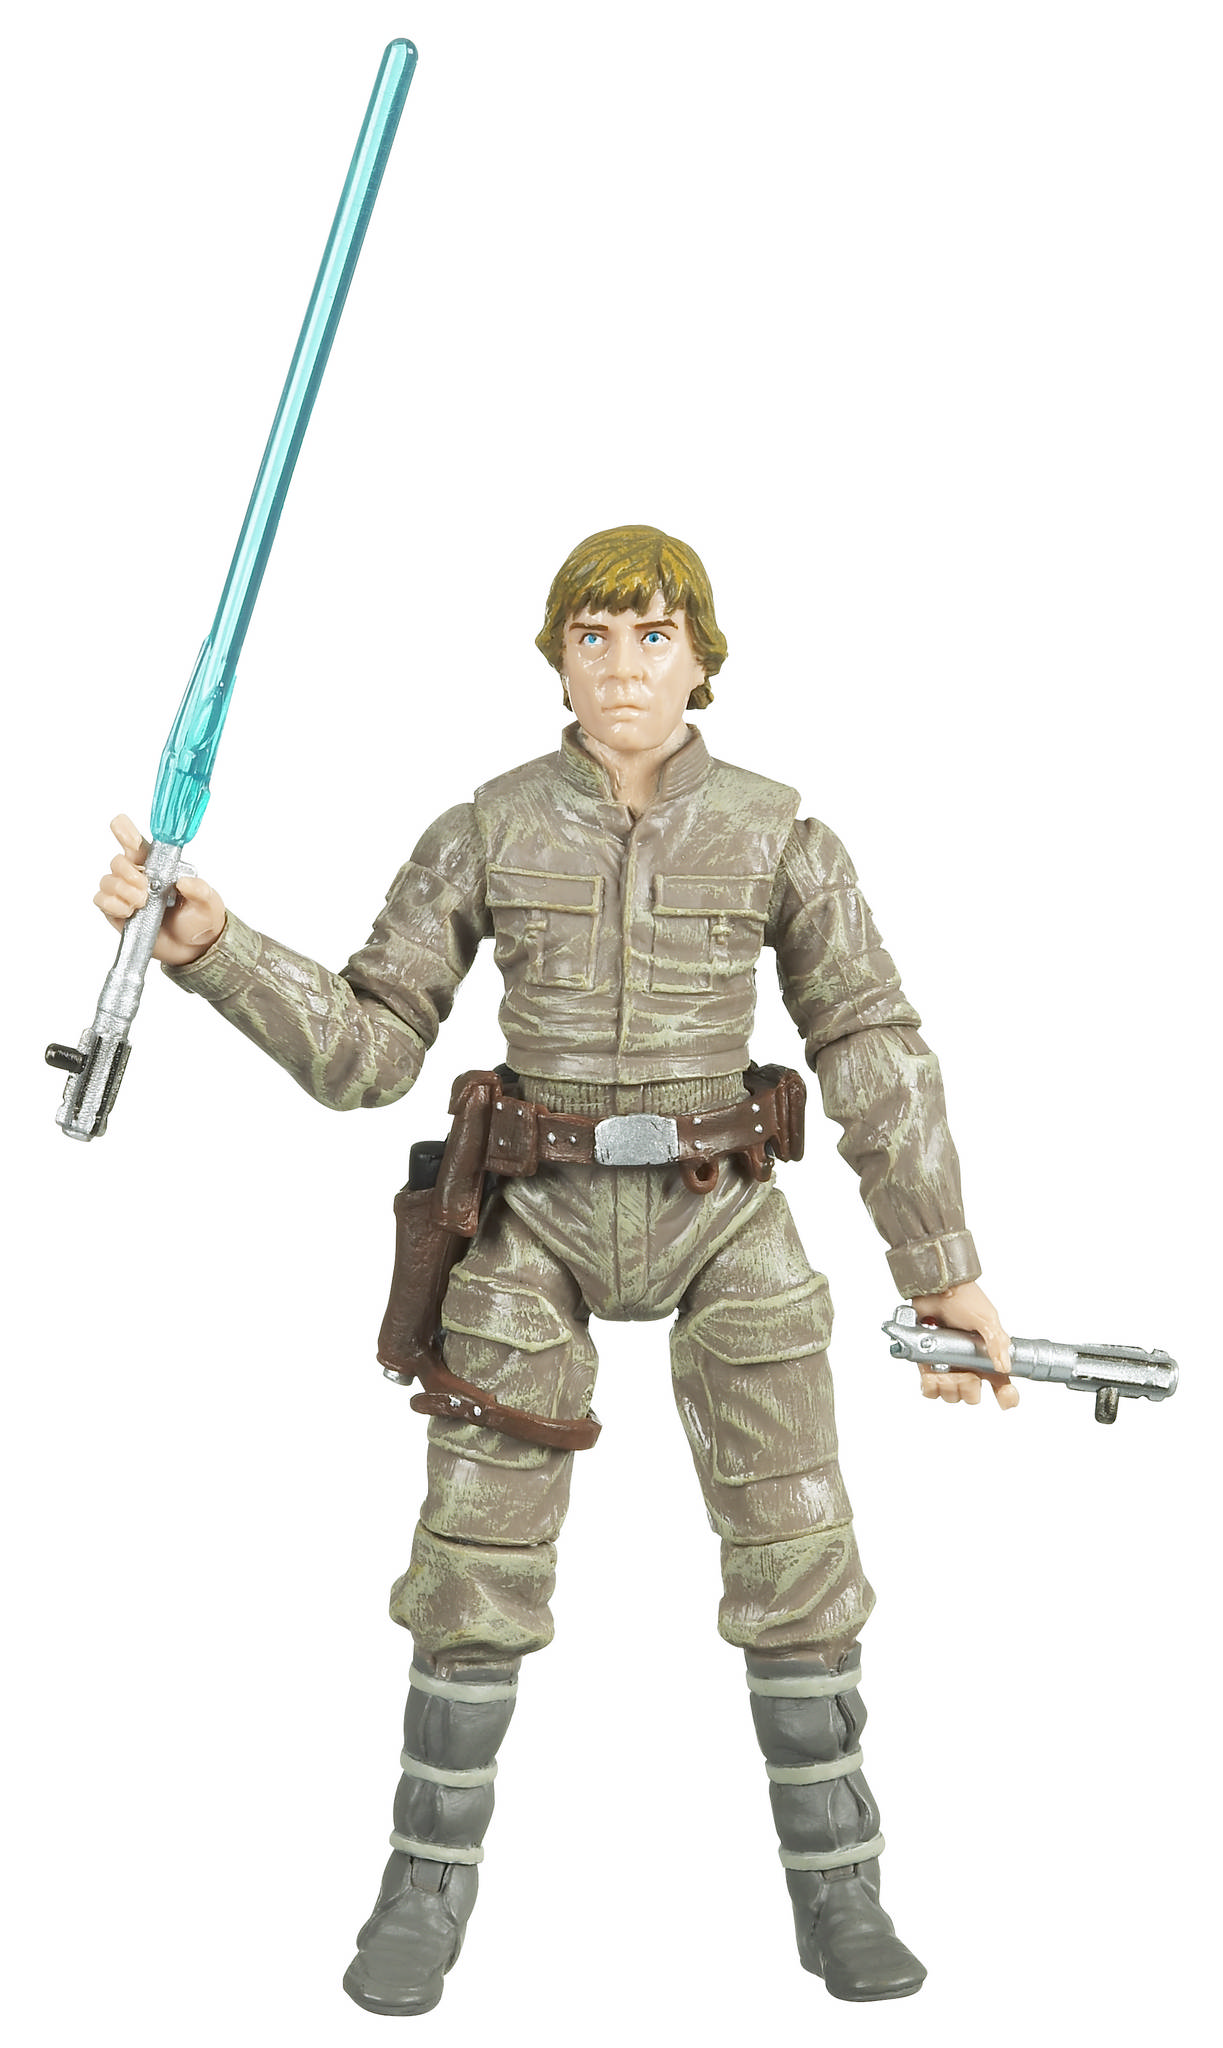 STAR WARS THE VINTAGE COLLECTION 3.75 INCH LUKE SKYWALKER BESPIN Figure